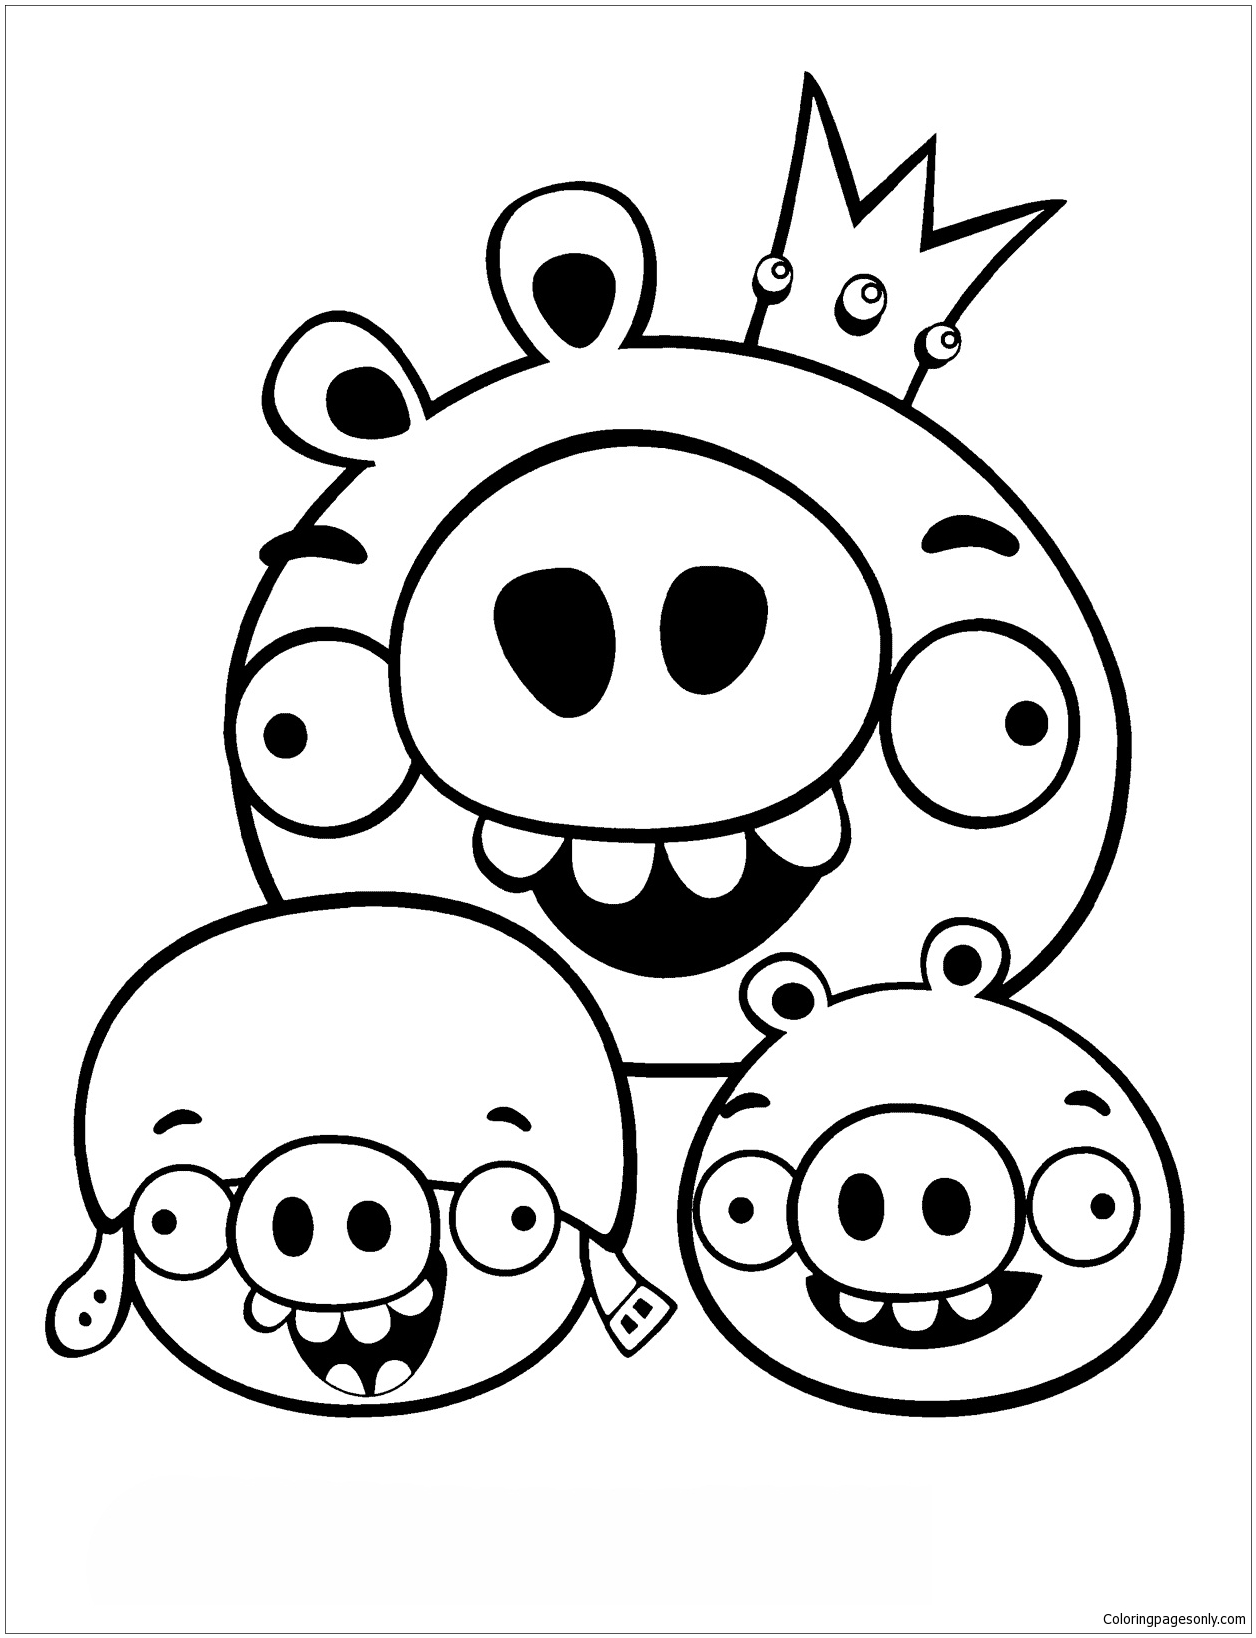 Funny Angry Birds Coloring Page Free Coloring Pages Online